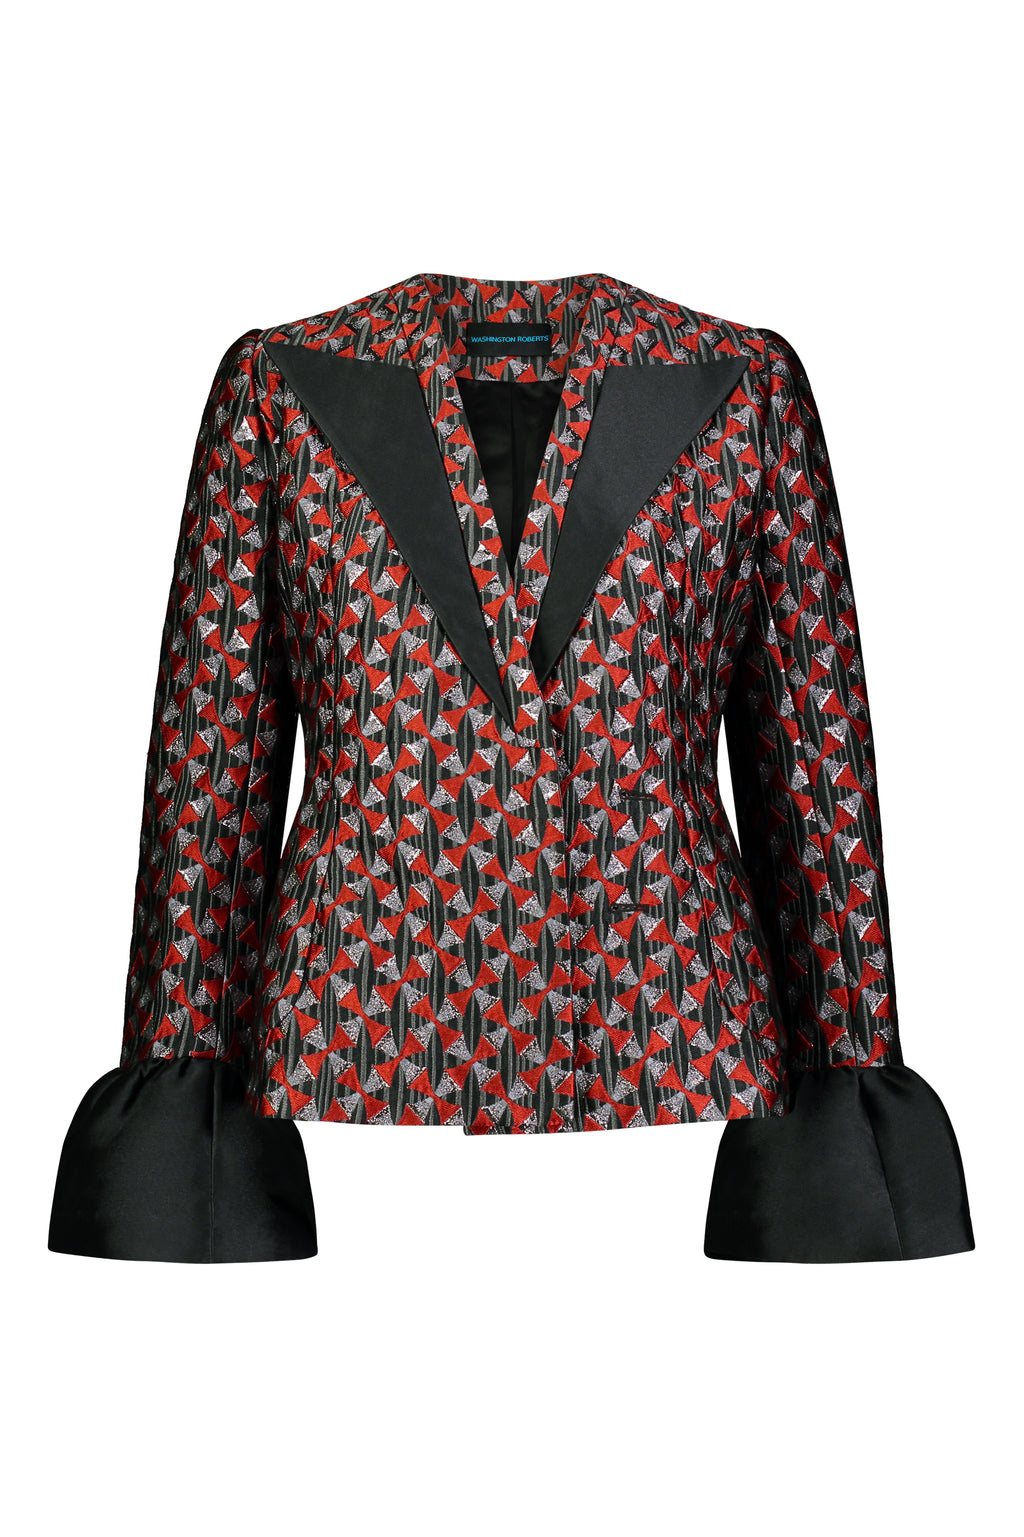 Washington Roberts Refleex blazer in Edo Dancer Geometric print - Tailored  Womens Suit